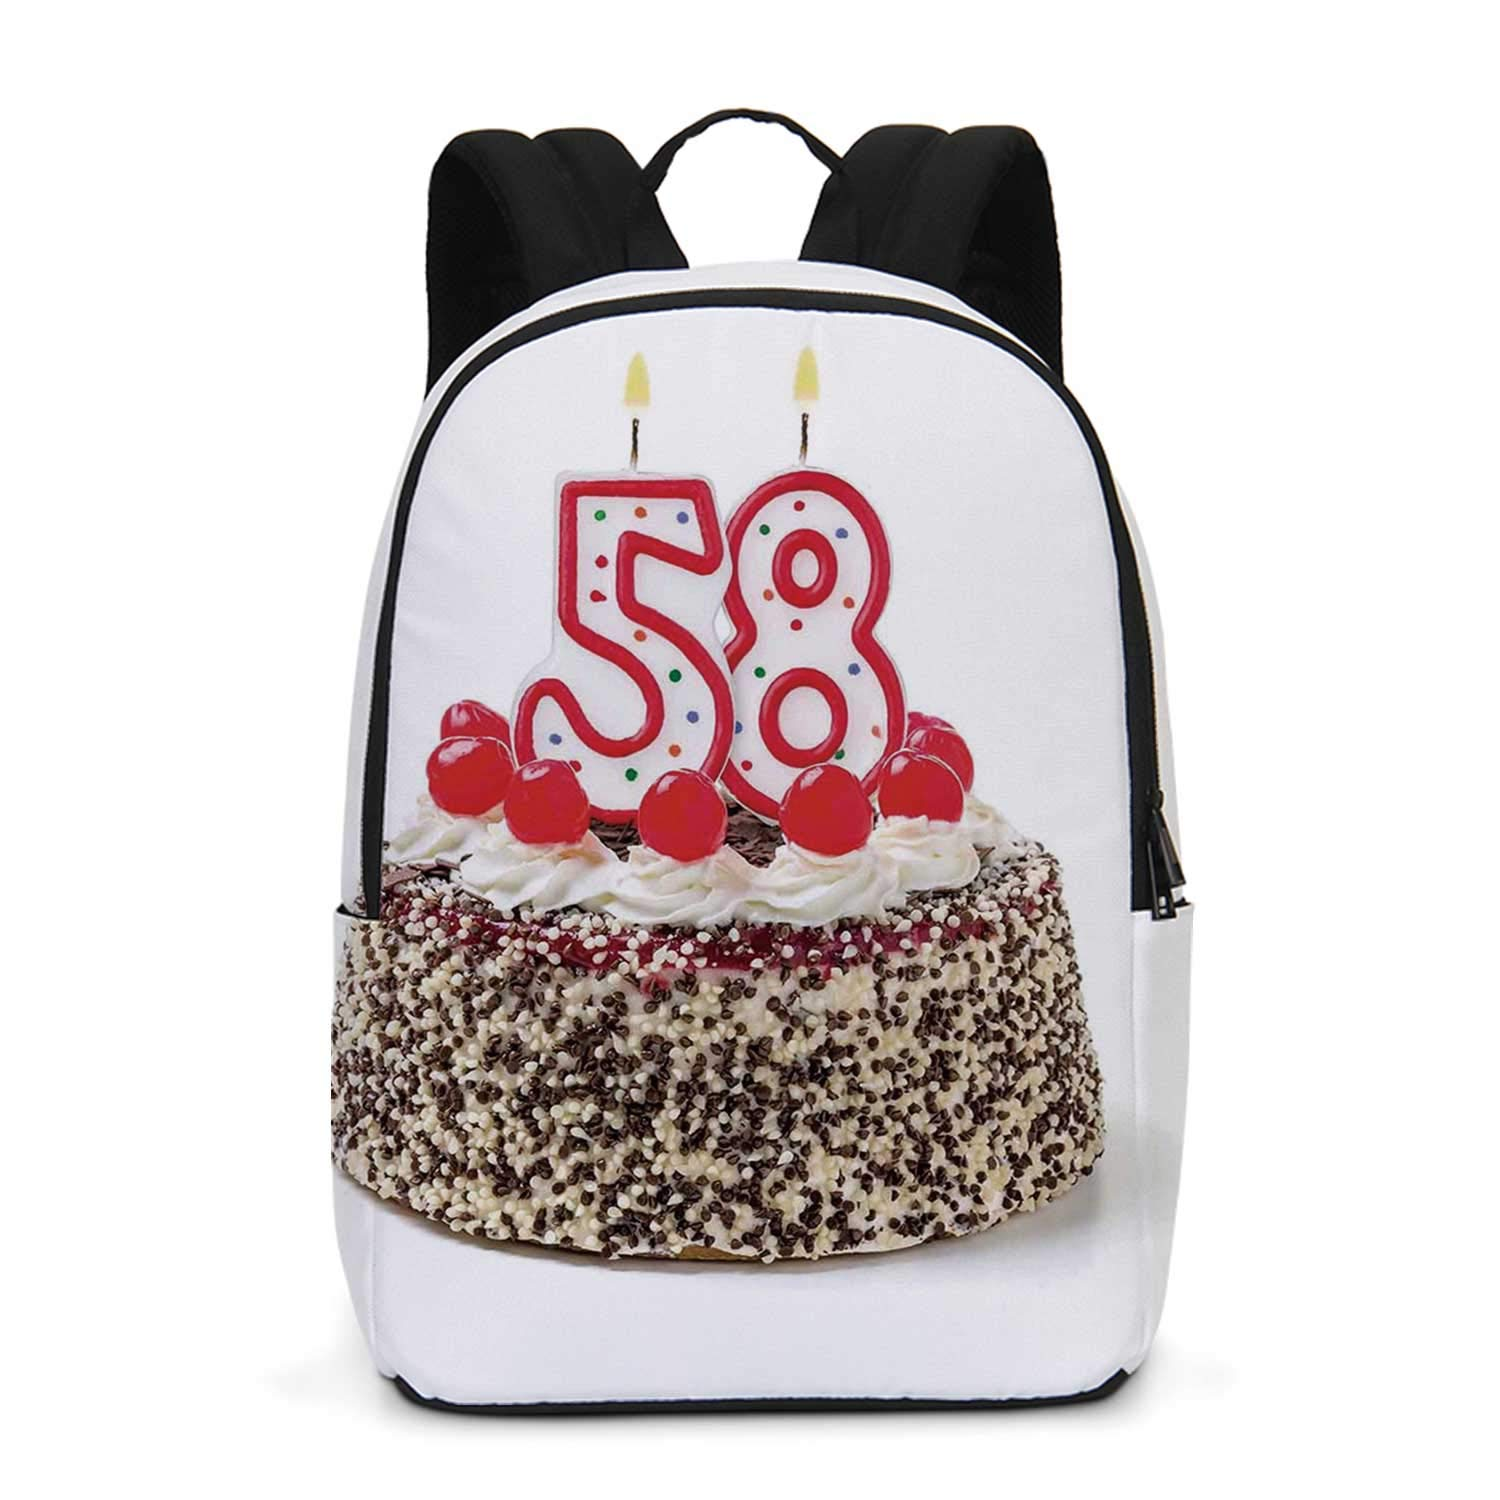 58th Birthday Decorations Durable Backpack,Birthday Cake with Cherries and Yummy Effects Sweet Age Picture for School Travel,One_Size